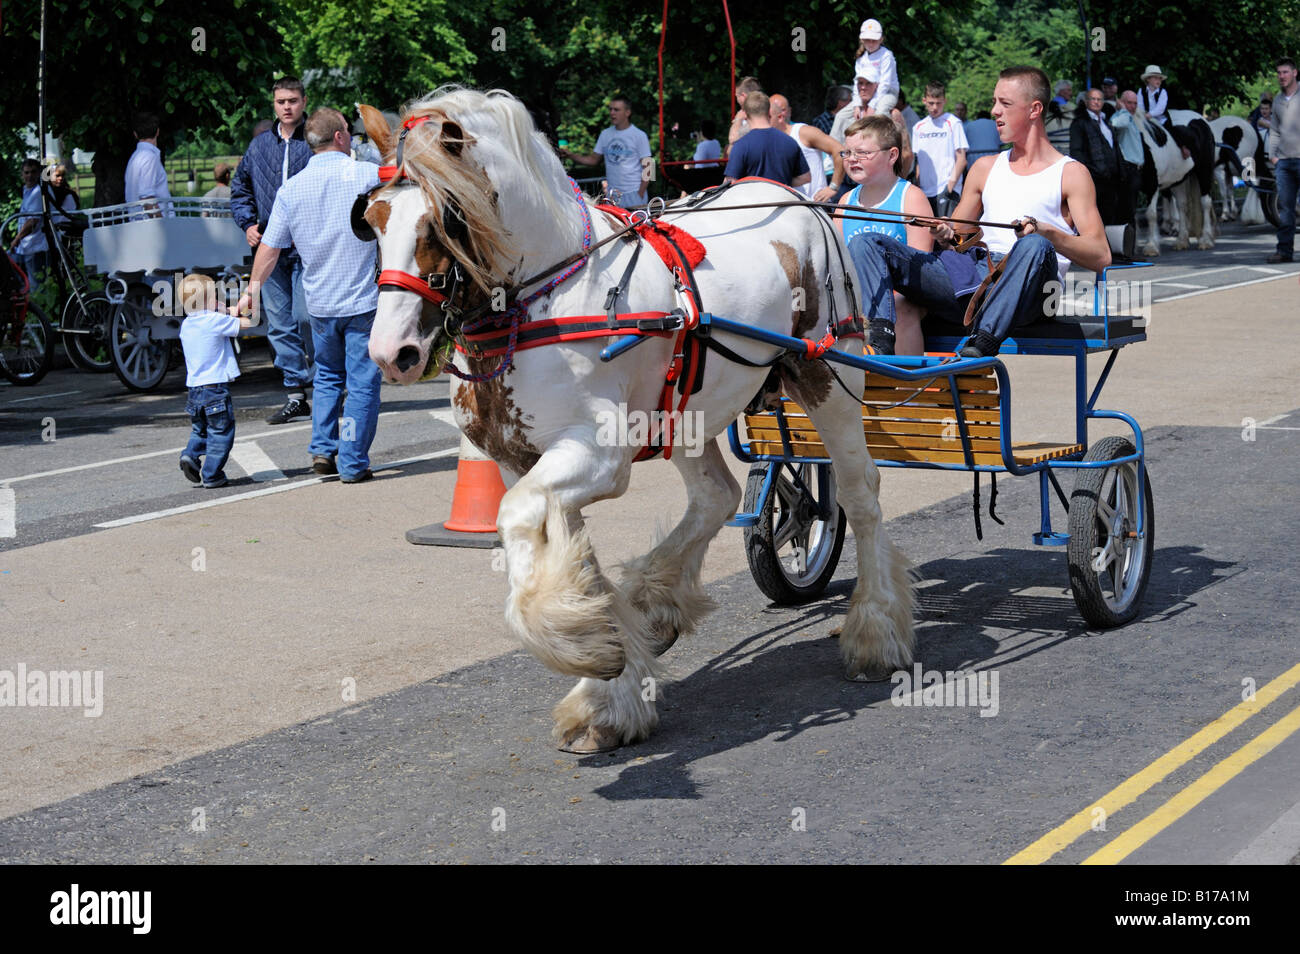 Gypsy traveller boy riding horse. Appleby Horse Fair Stock Photo ...